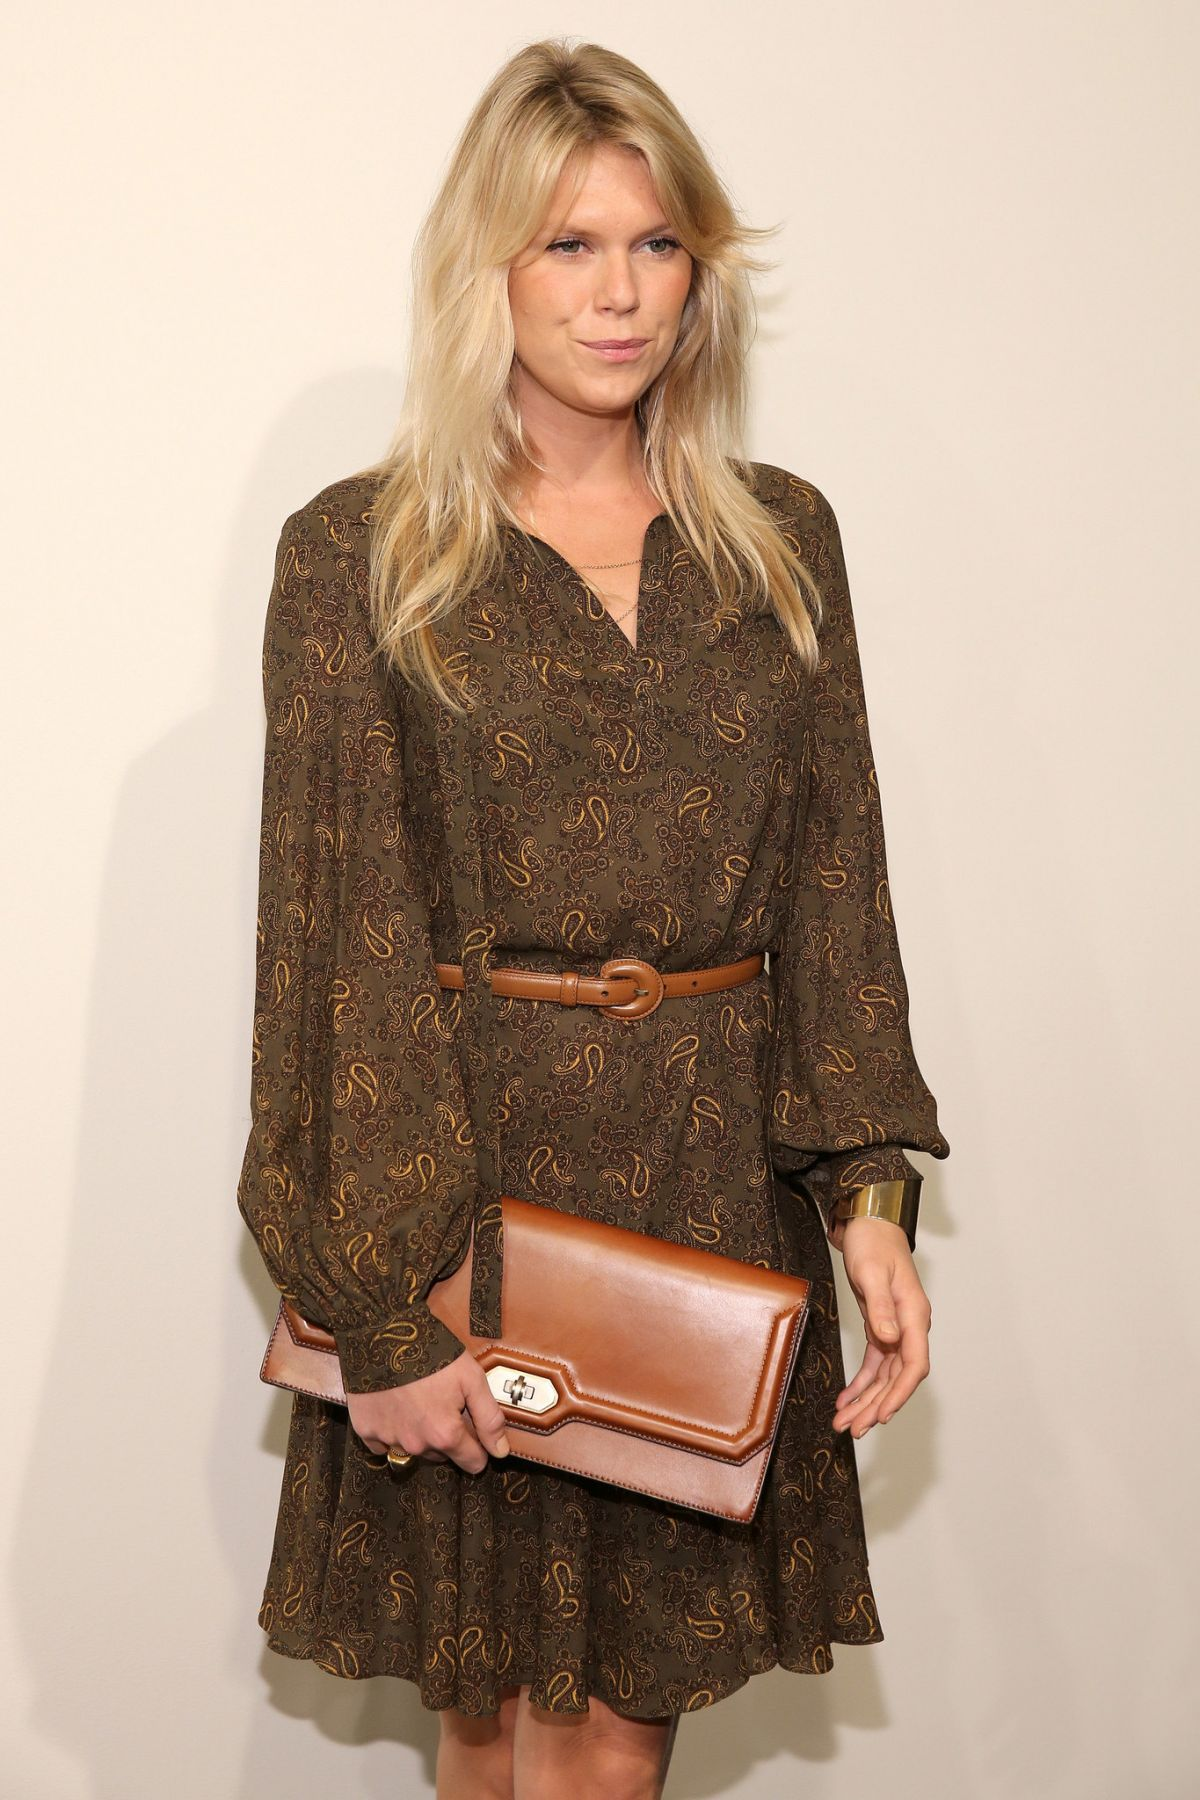 ALEXANDRA RICHARDS at Michael Kors Fashion Show at NYFW 09/16/2015